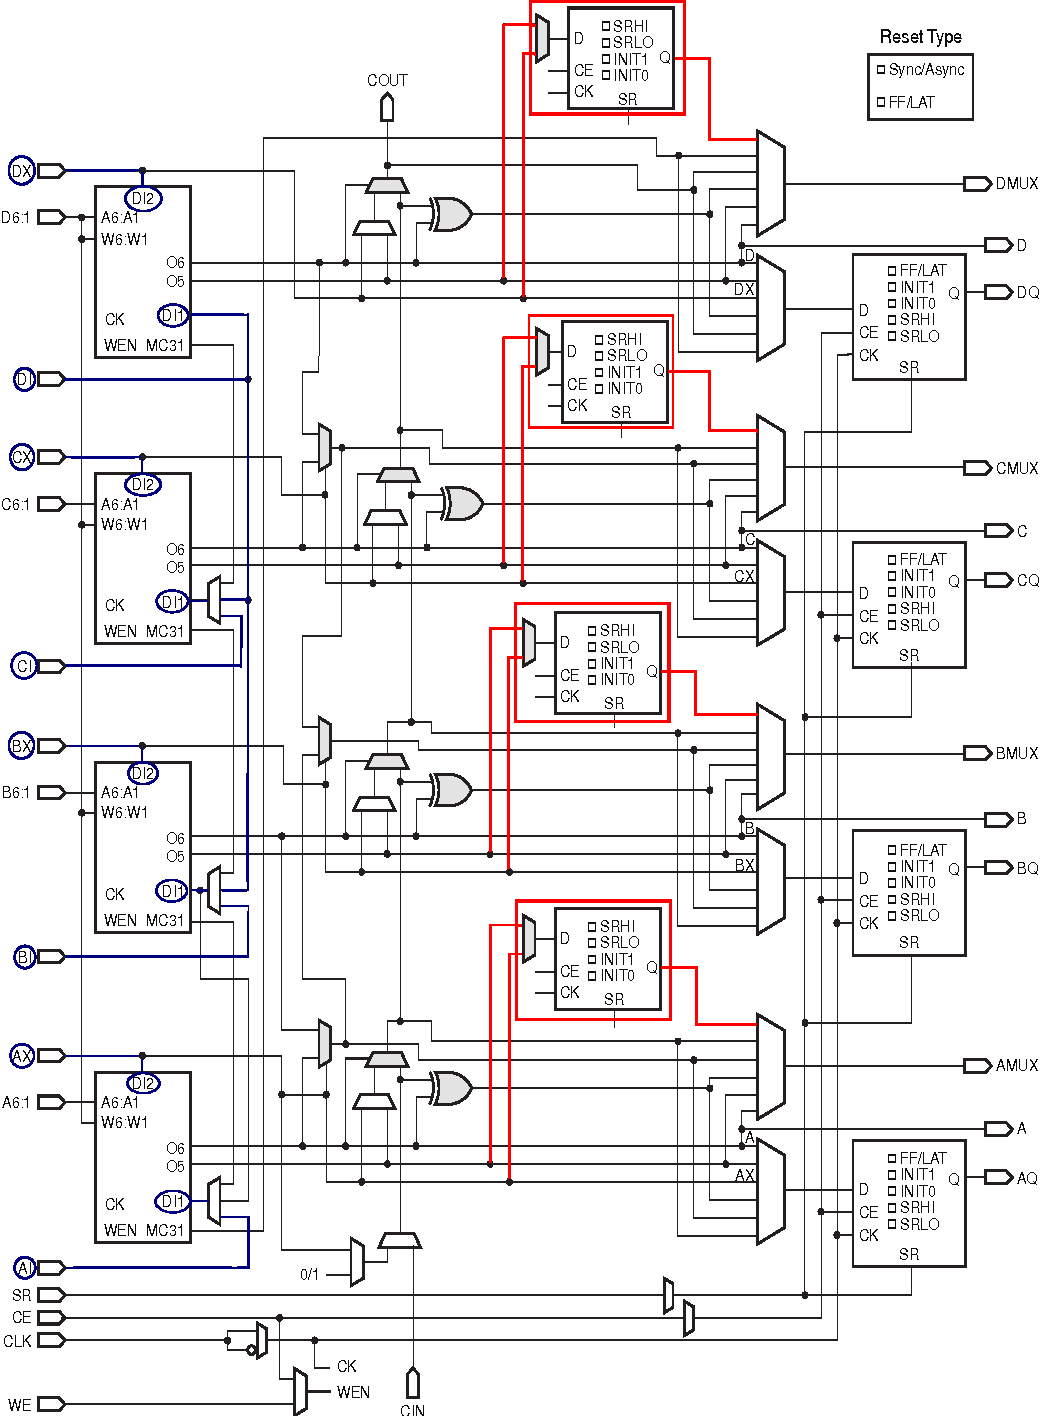 Online Self Test Wrapper For Runtime Reconfigurable Systems C61 Wiring Diagram Semantic Scholar